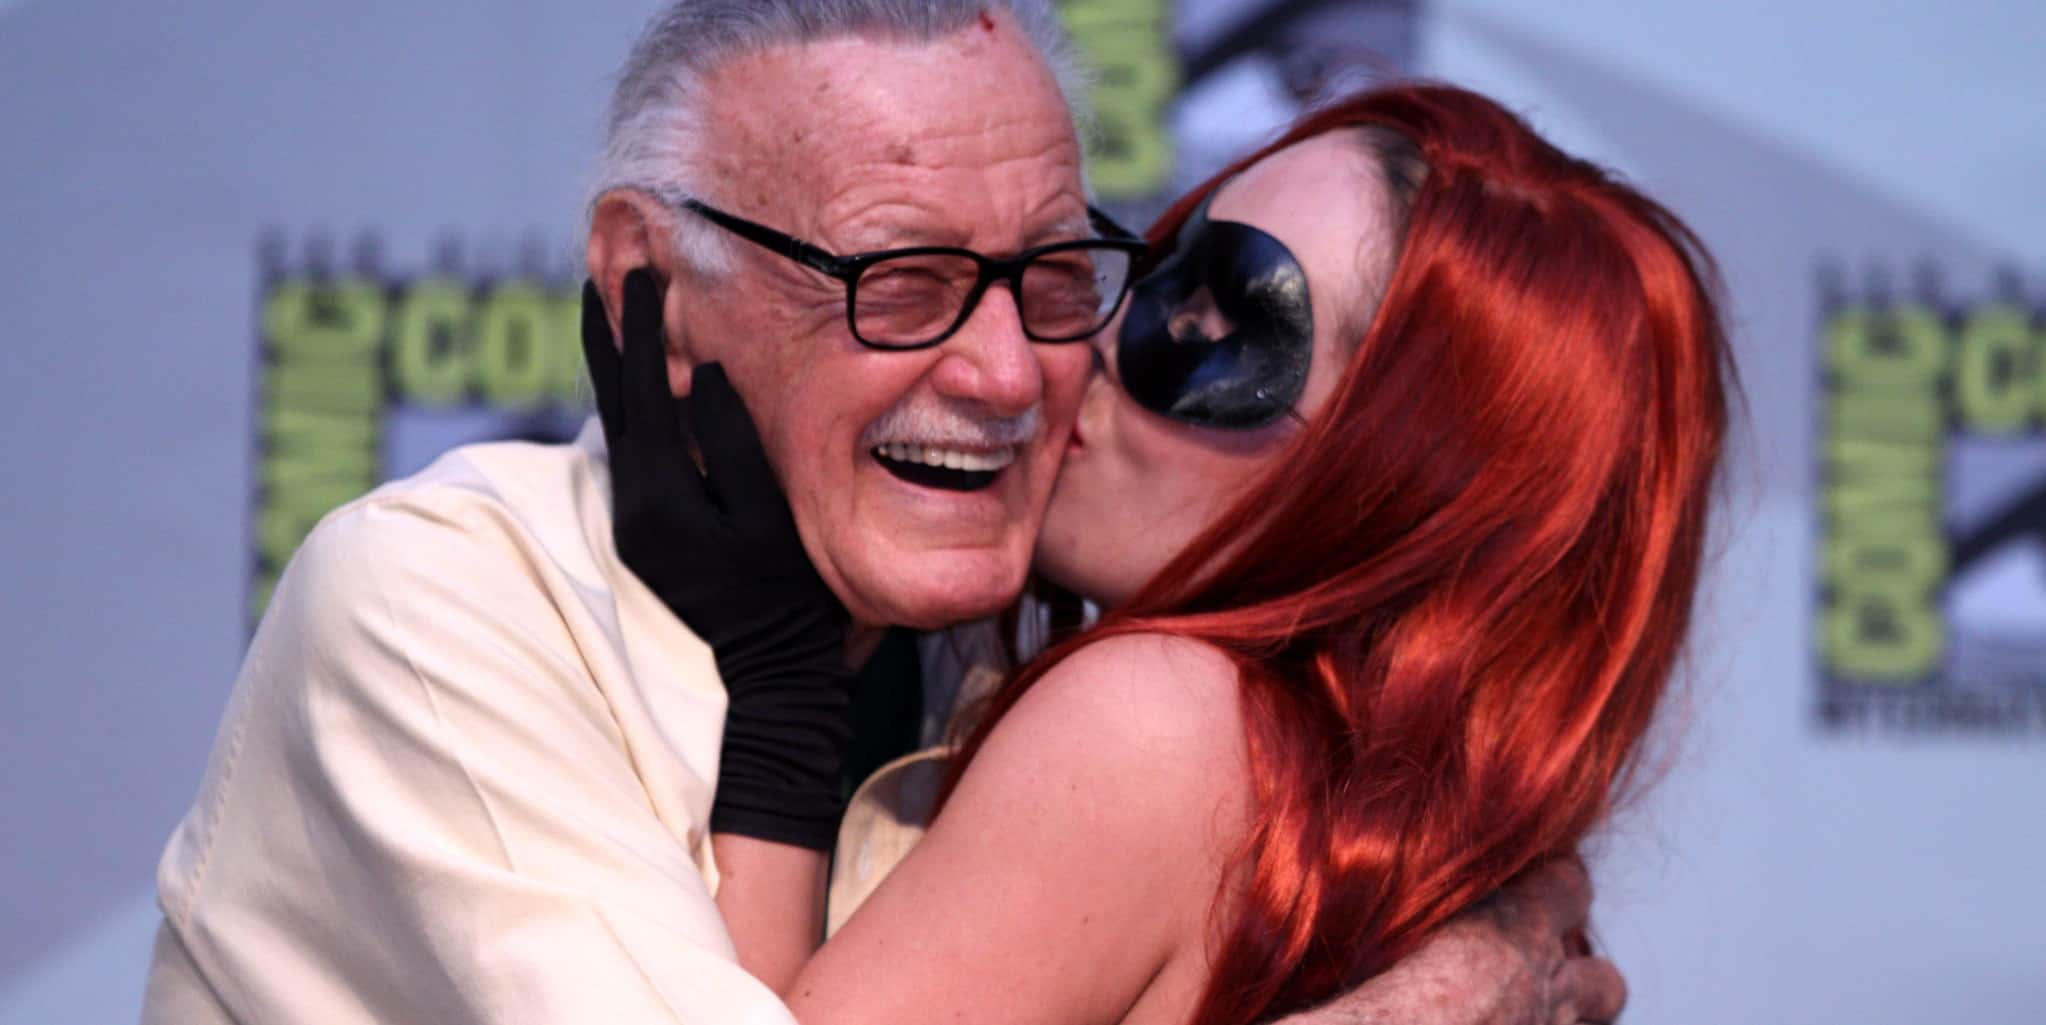 Celebrating Stan Lee Cosplay Kiss 2010 SDCC Gage Skidmore Featured